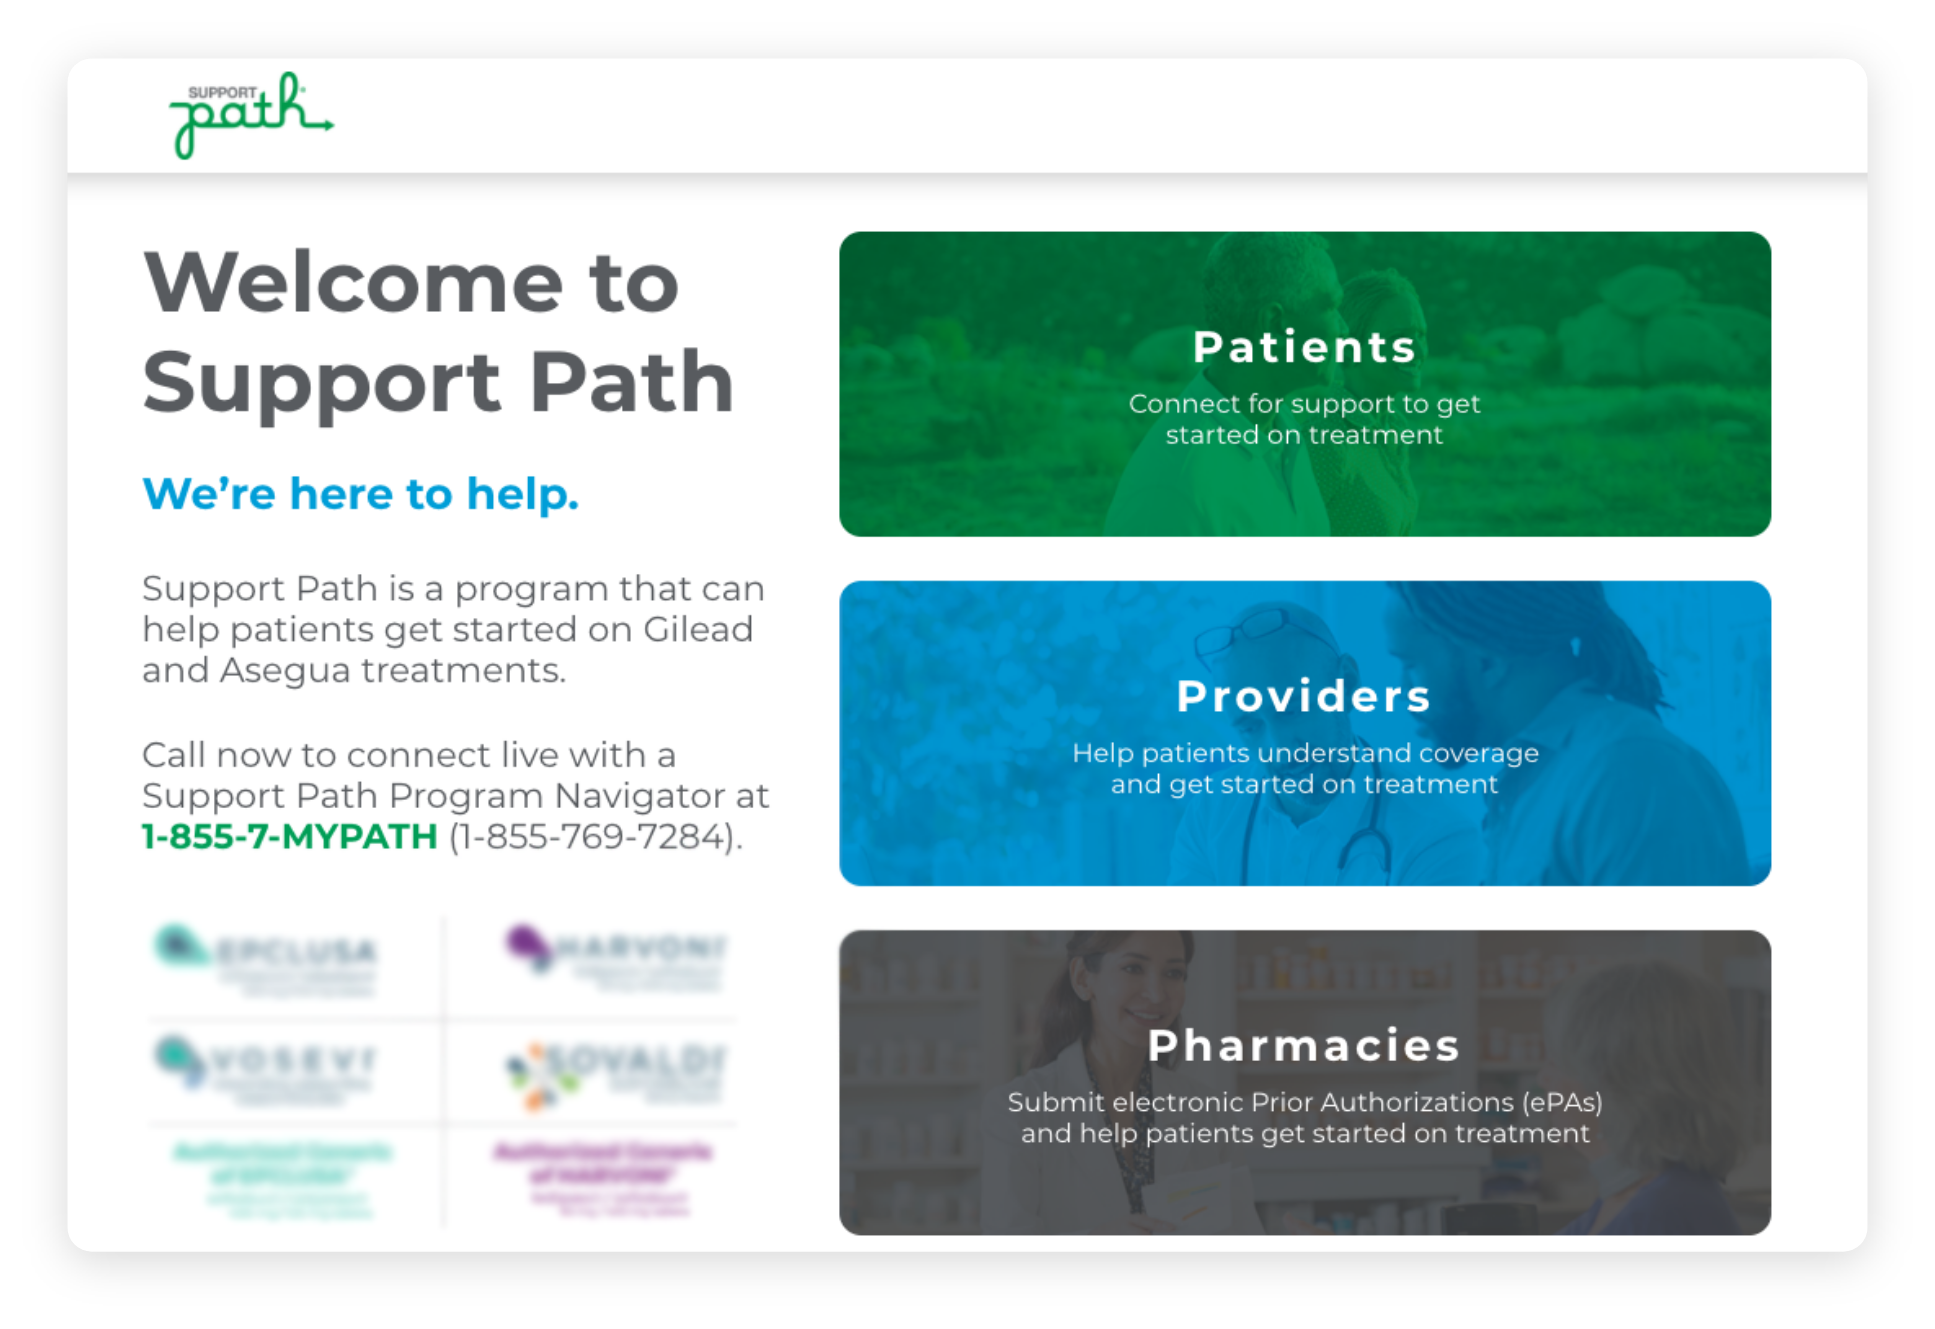 Support path is a program that can help patients get started on Gilead treatments